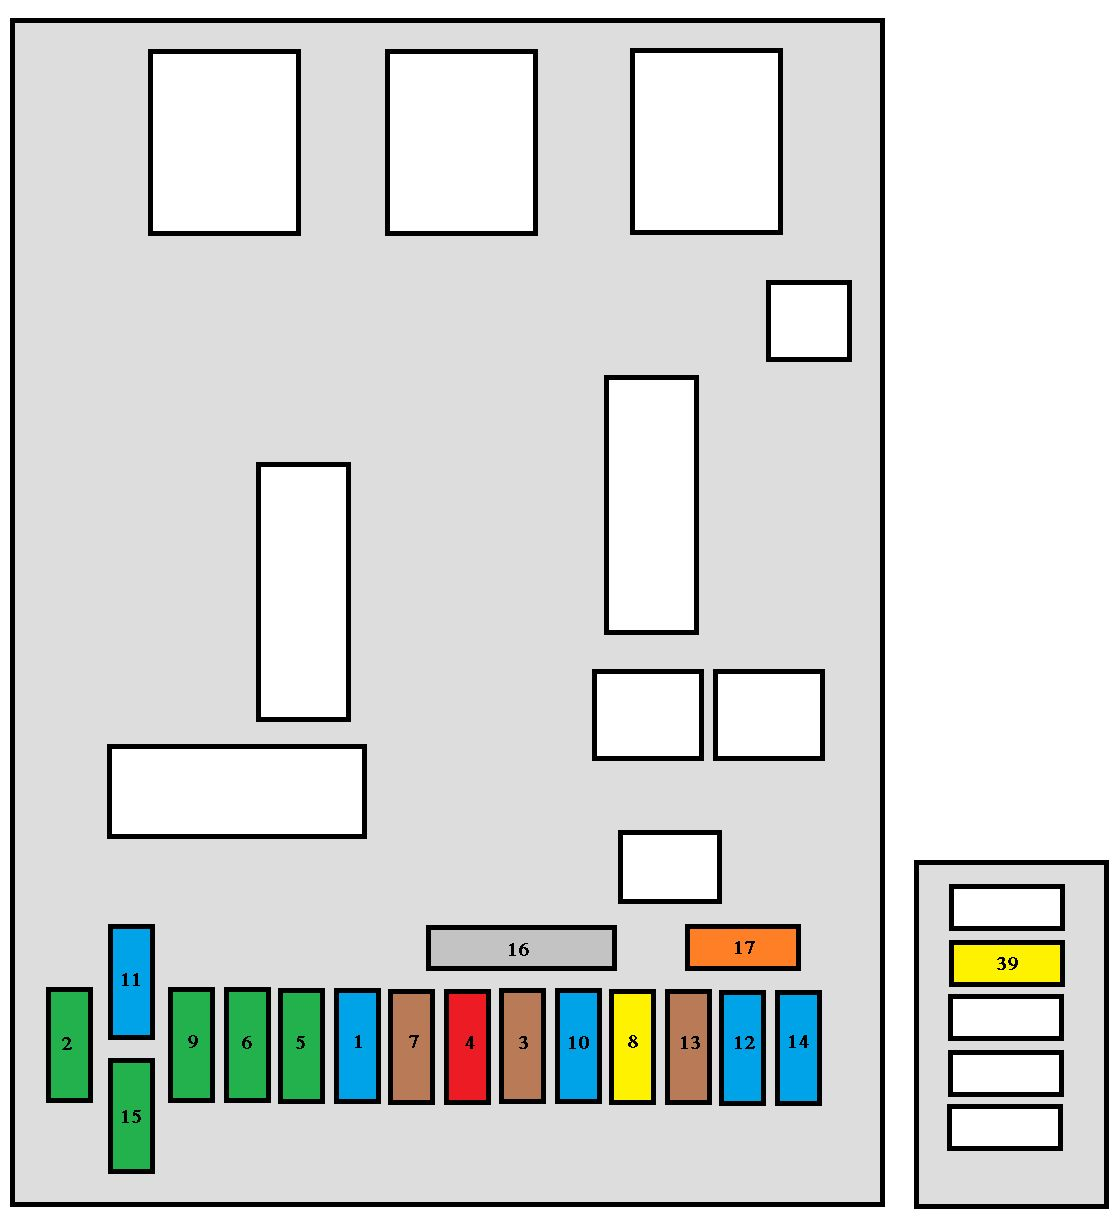 peugeot 307 (2005 - 2008) - fuse box diagram - auto genius peugeot 205 gti fuse box diagram #6